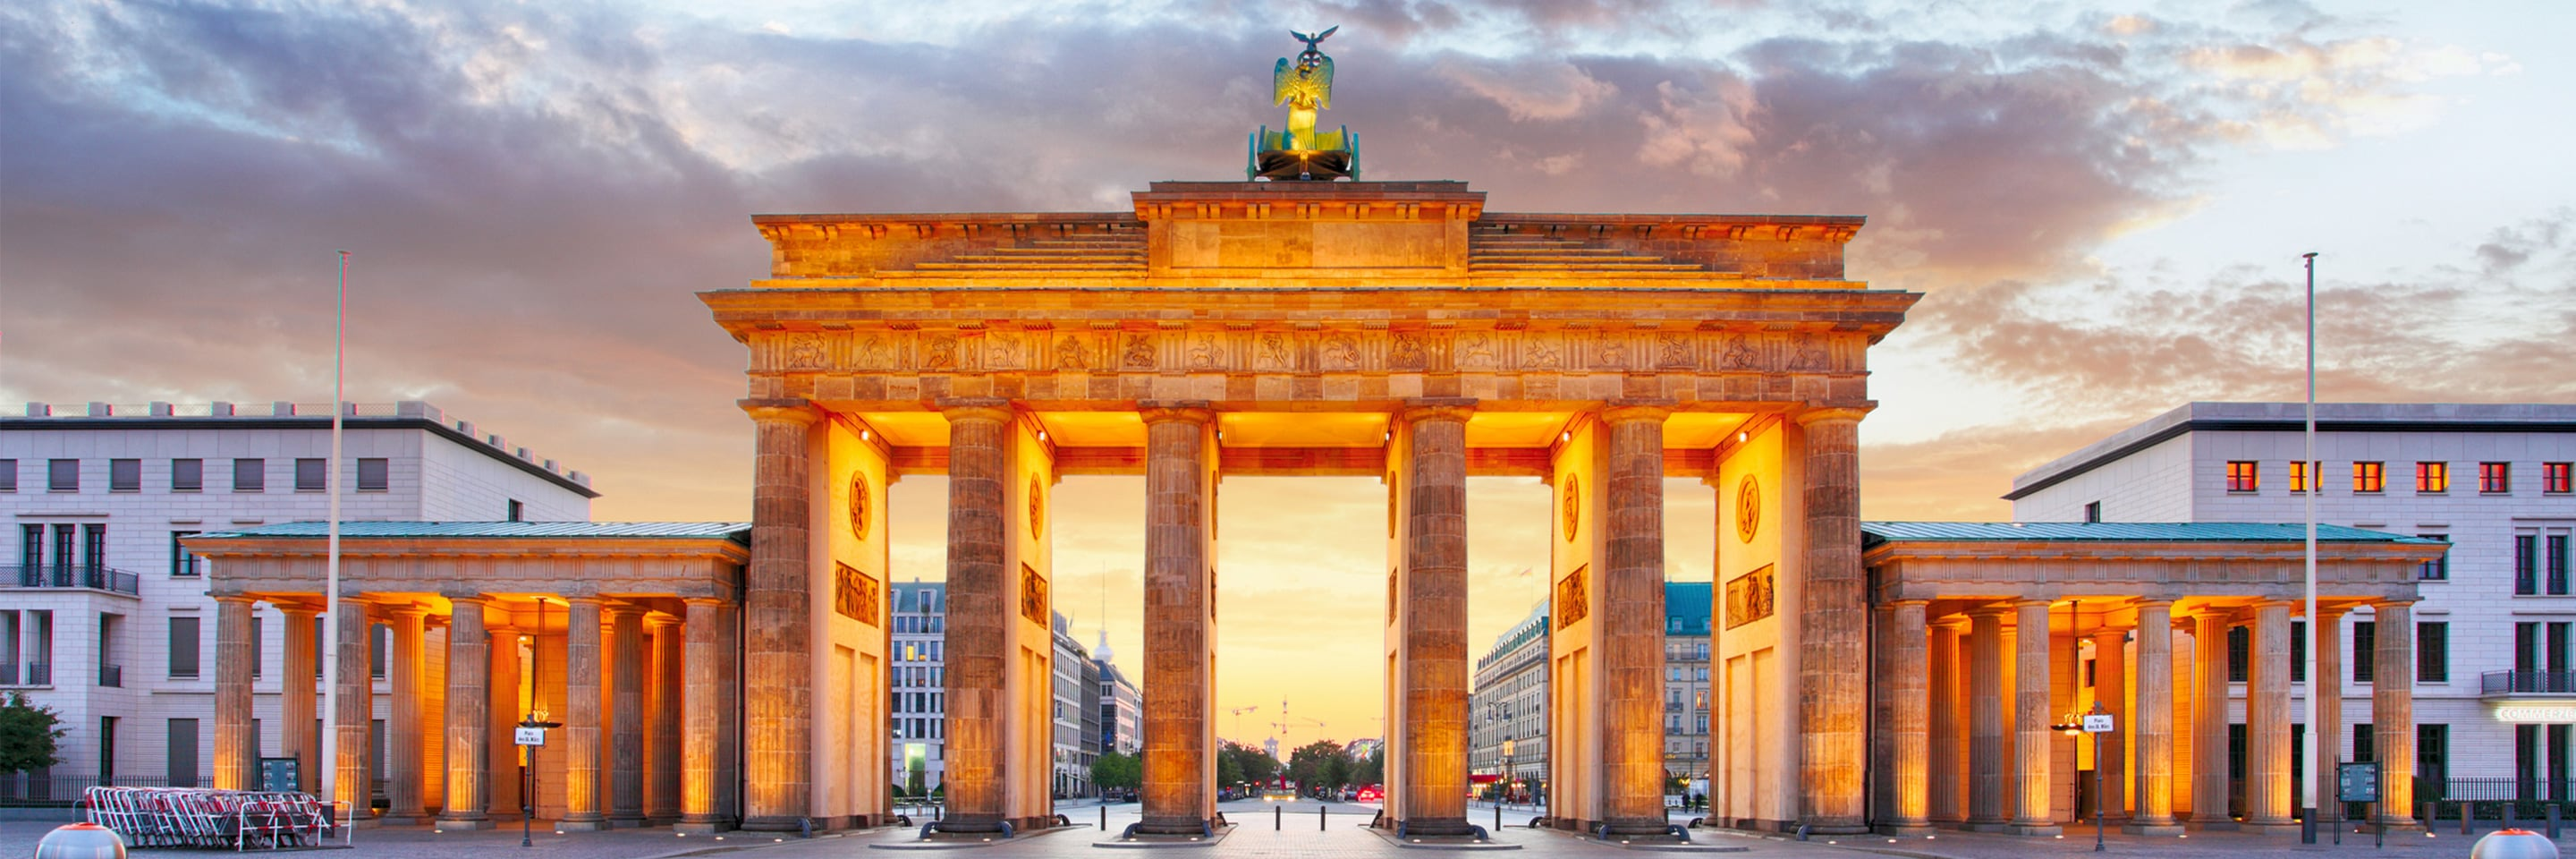 Hotels in Berlin